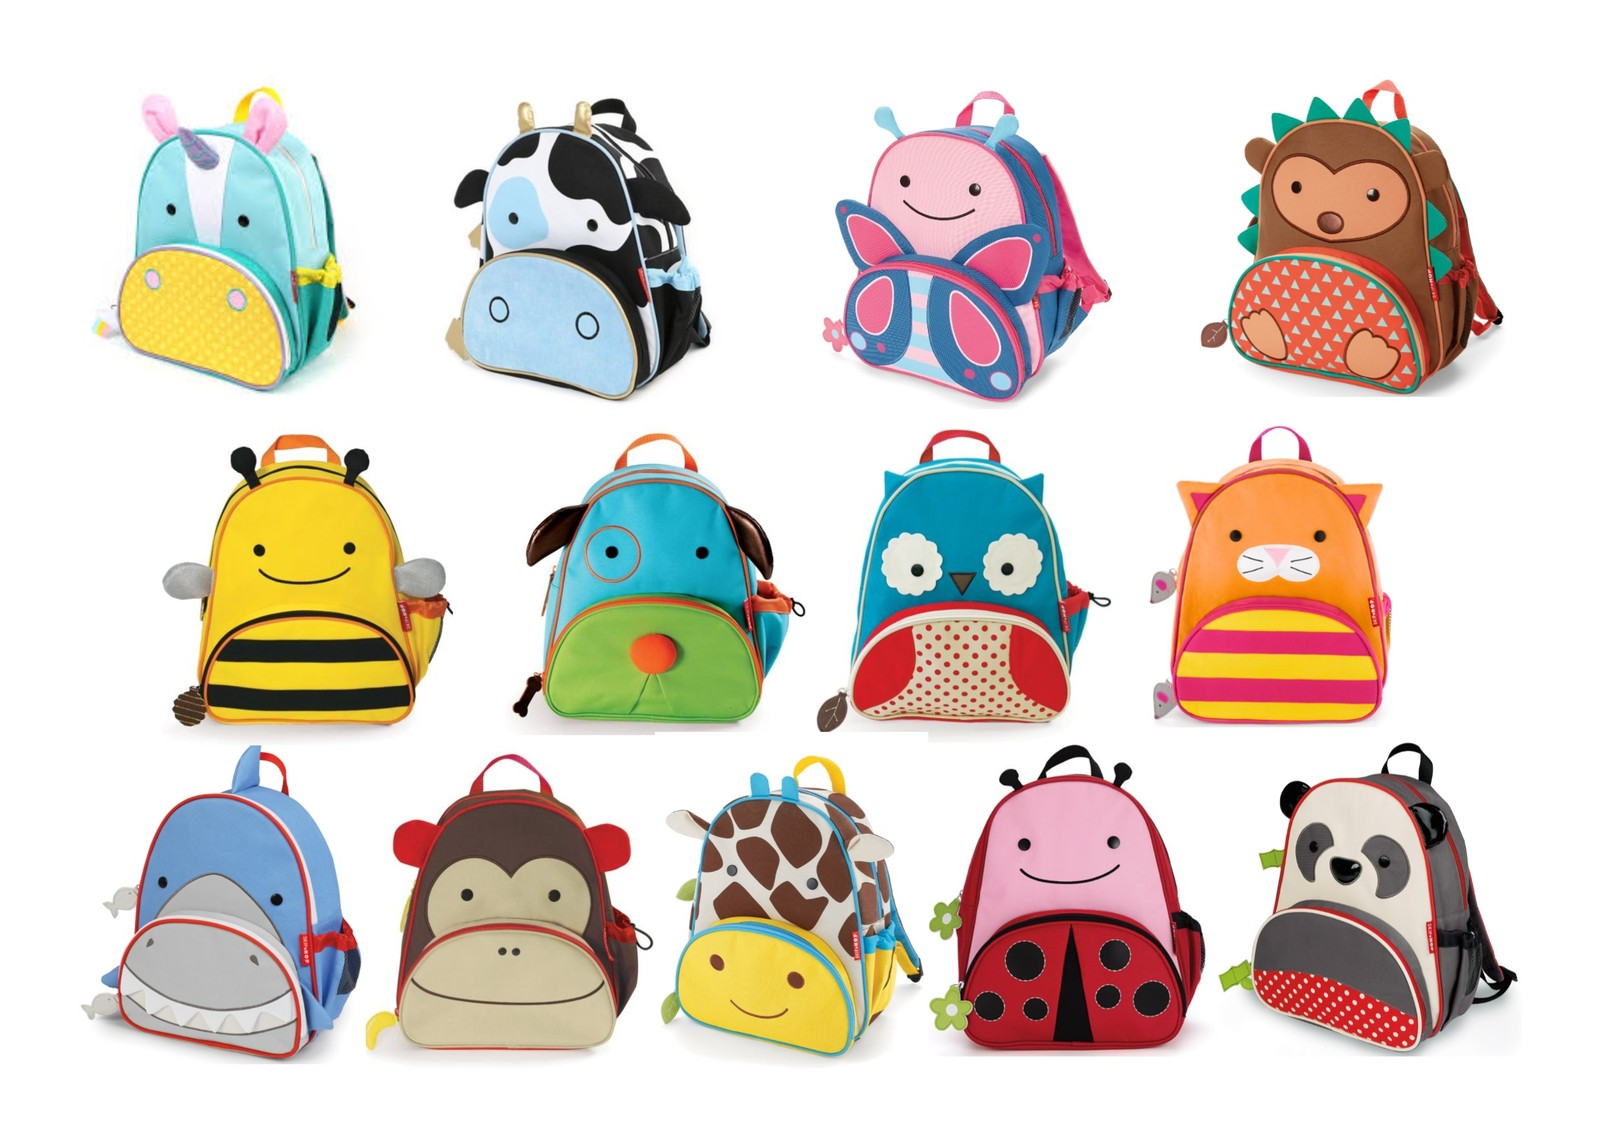 Child packing a backpack with toys clipart jpg freeuse download SkipHop Zoo Little Kid Backpack Many styles available at Wrigglepot jpg freeuse download